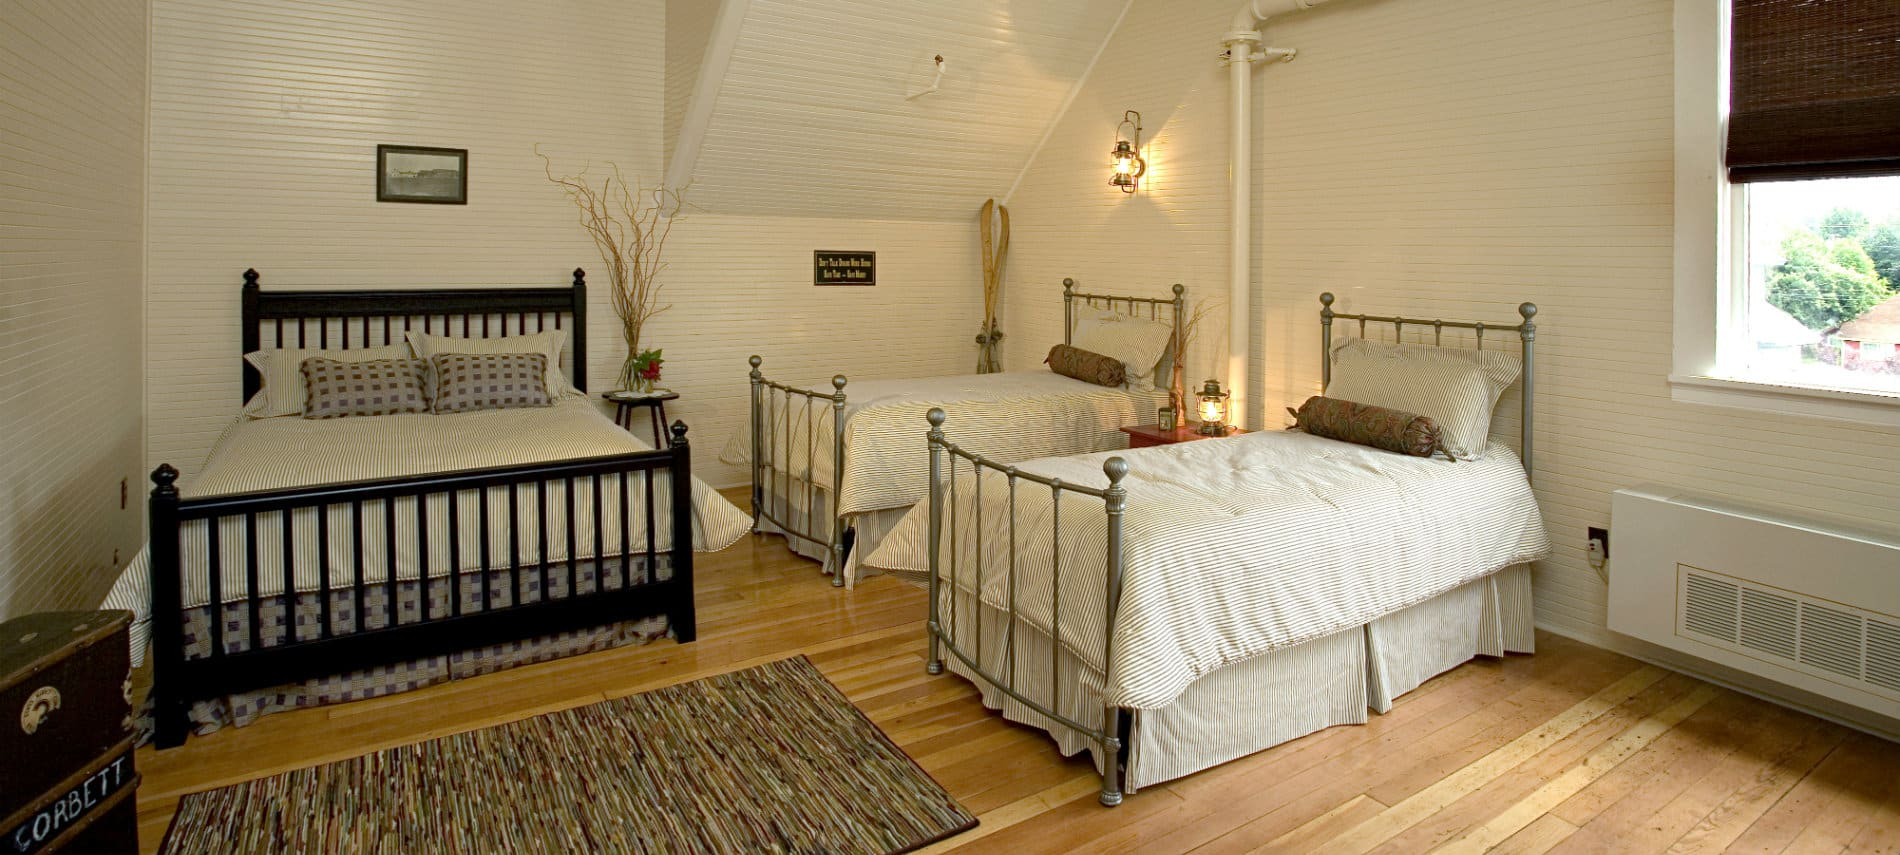 Large suite with a queen and two twin beds made up in white with wooden floors and red and white walls.